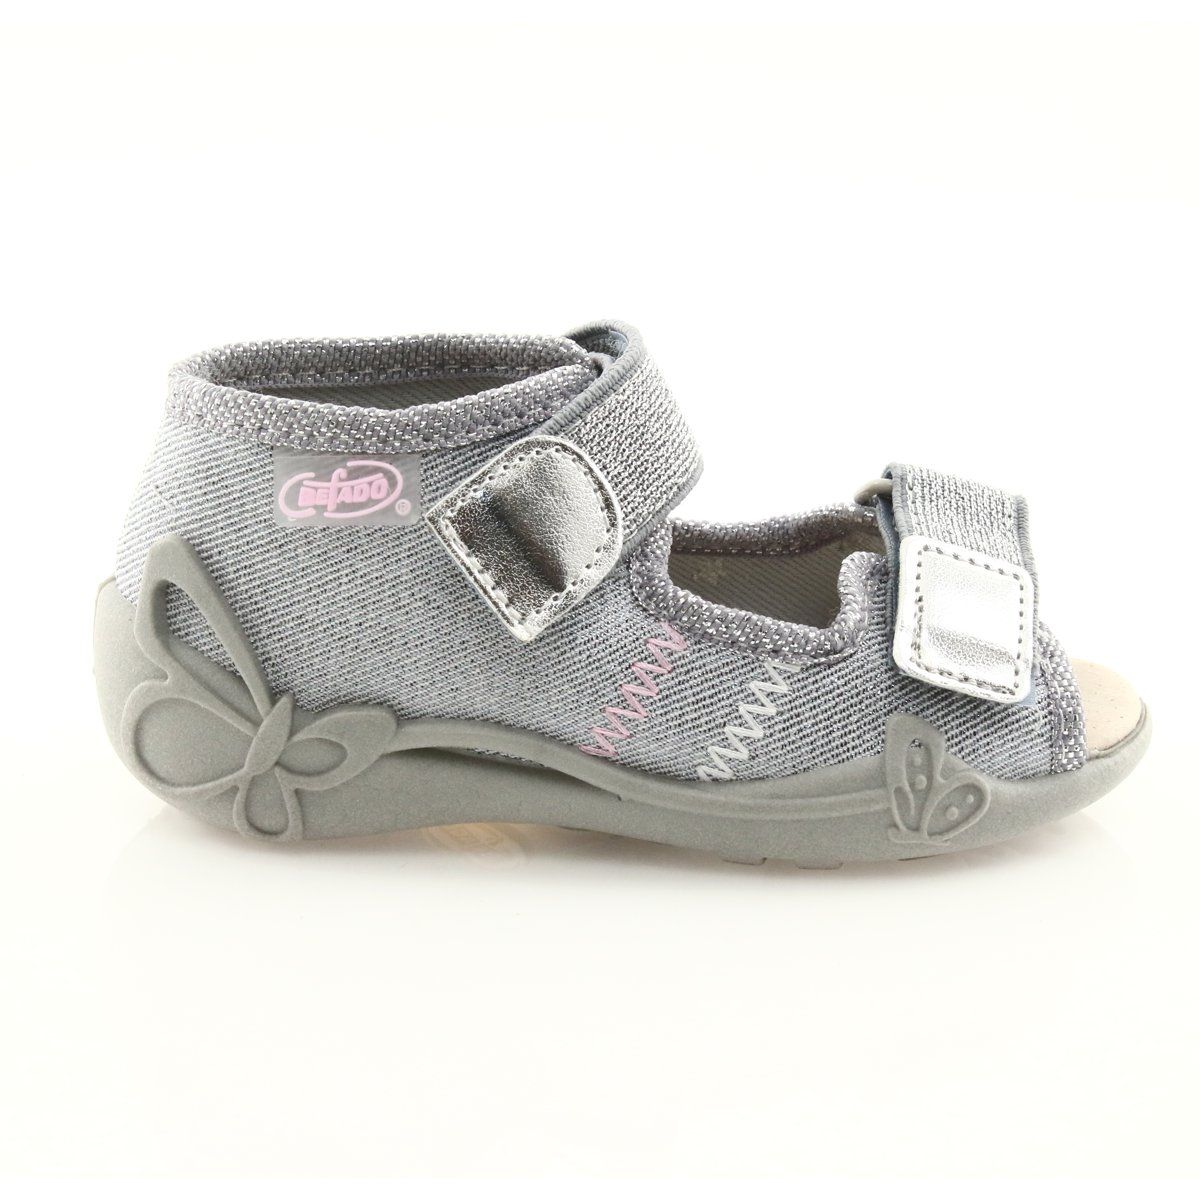 Befado Children S Shoes 342p002 Silvery Grey Childrens Shoes Childrens Slippers Kid Shoes